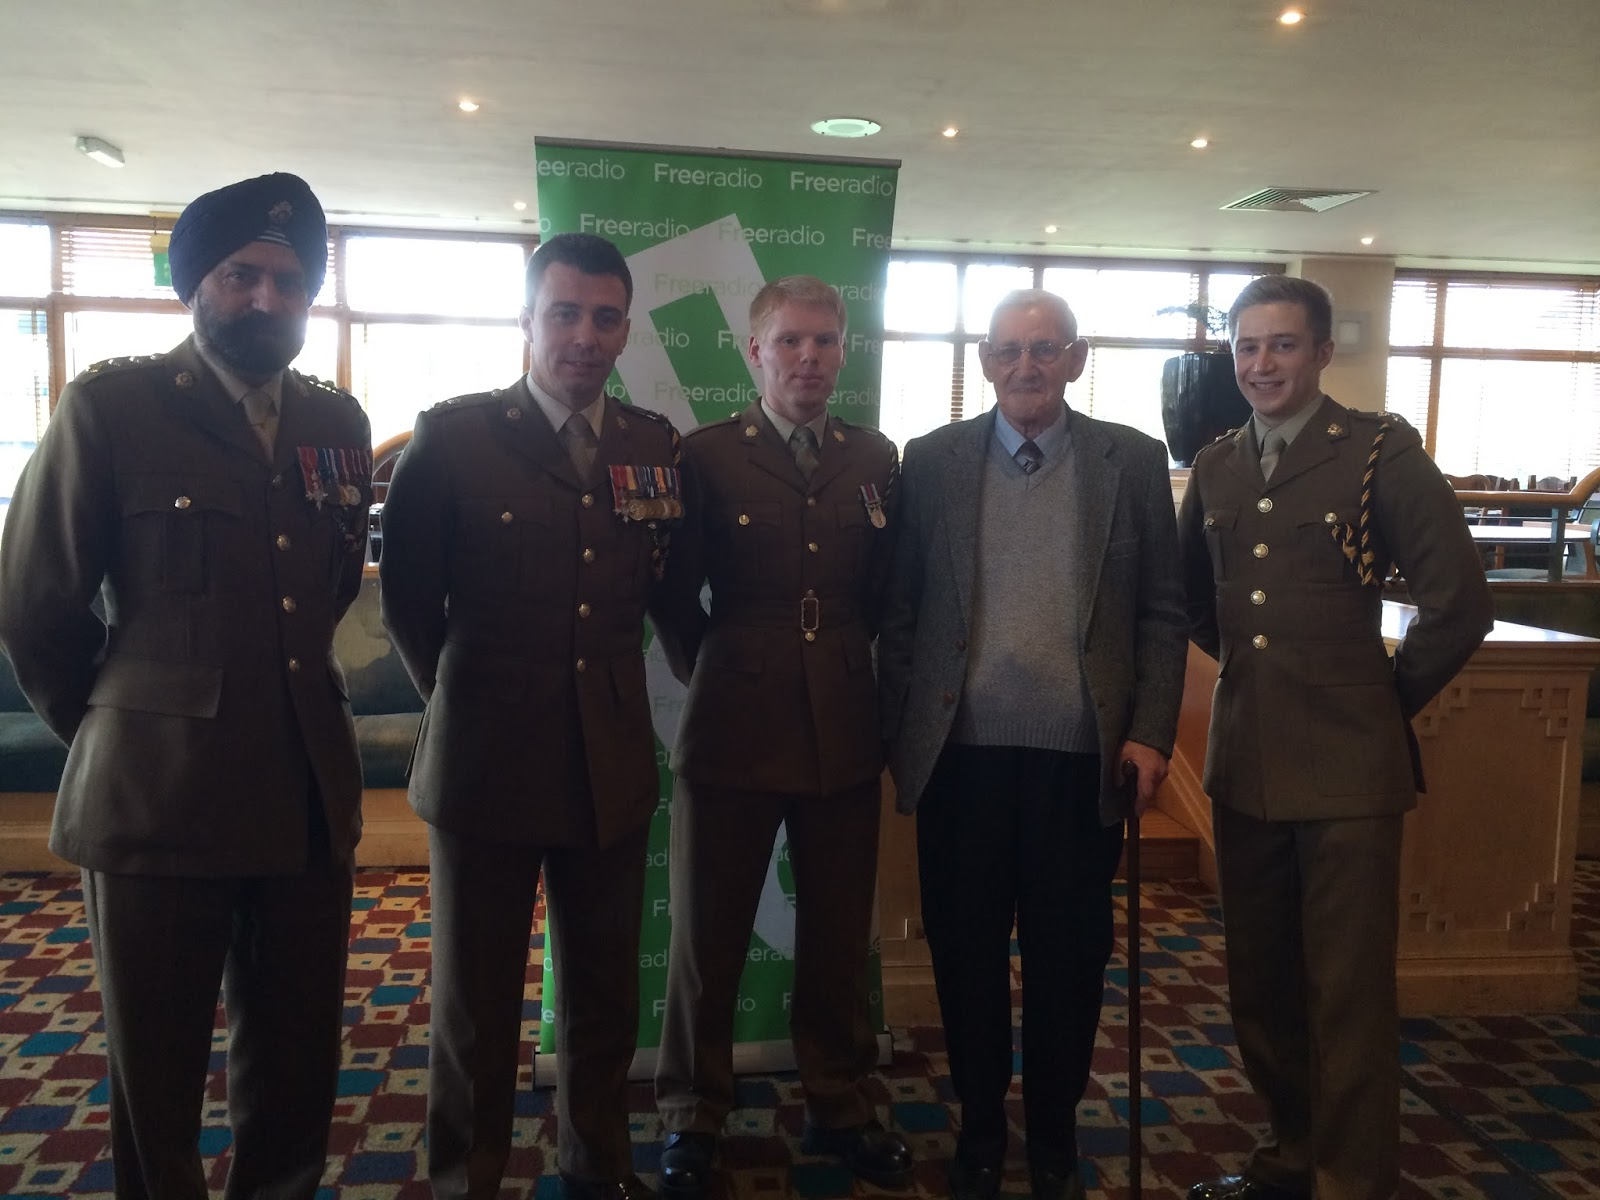 159 Supply Regiment of the British Army's Commanding Officer, Welfar Officer, Troop Commander, LCpl Hoskins and his grandfather Mr Hoskins at the Pride of Coventry awards ceremony 2014.